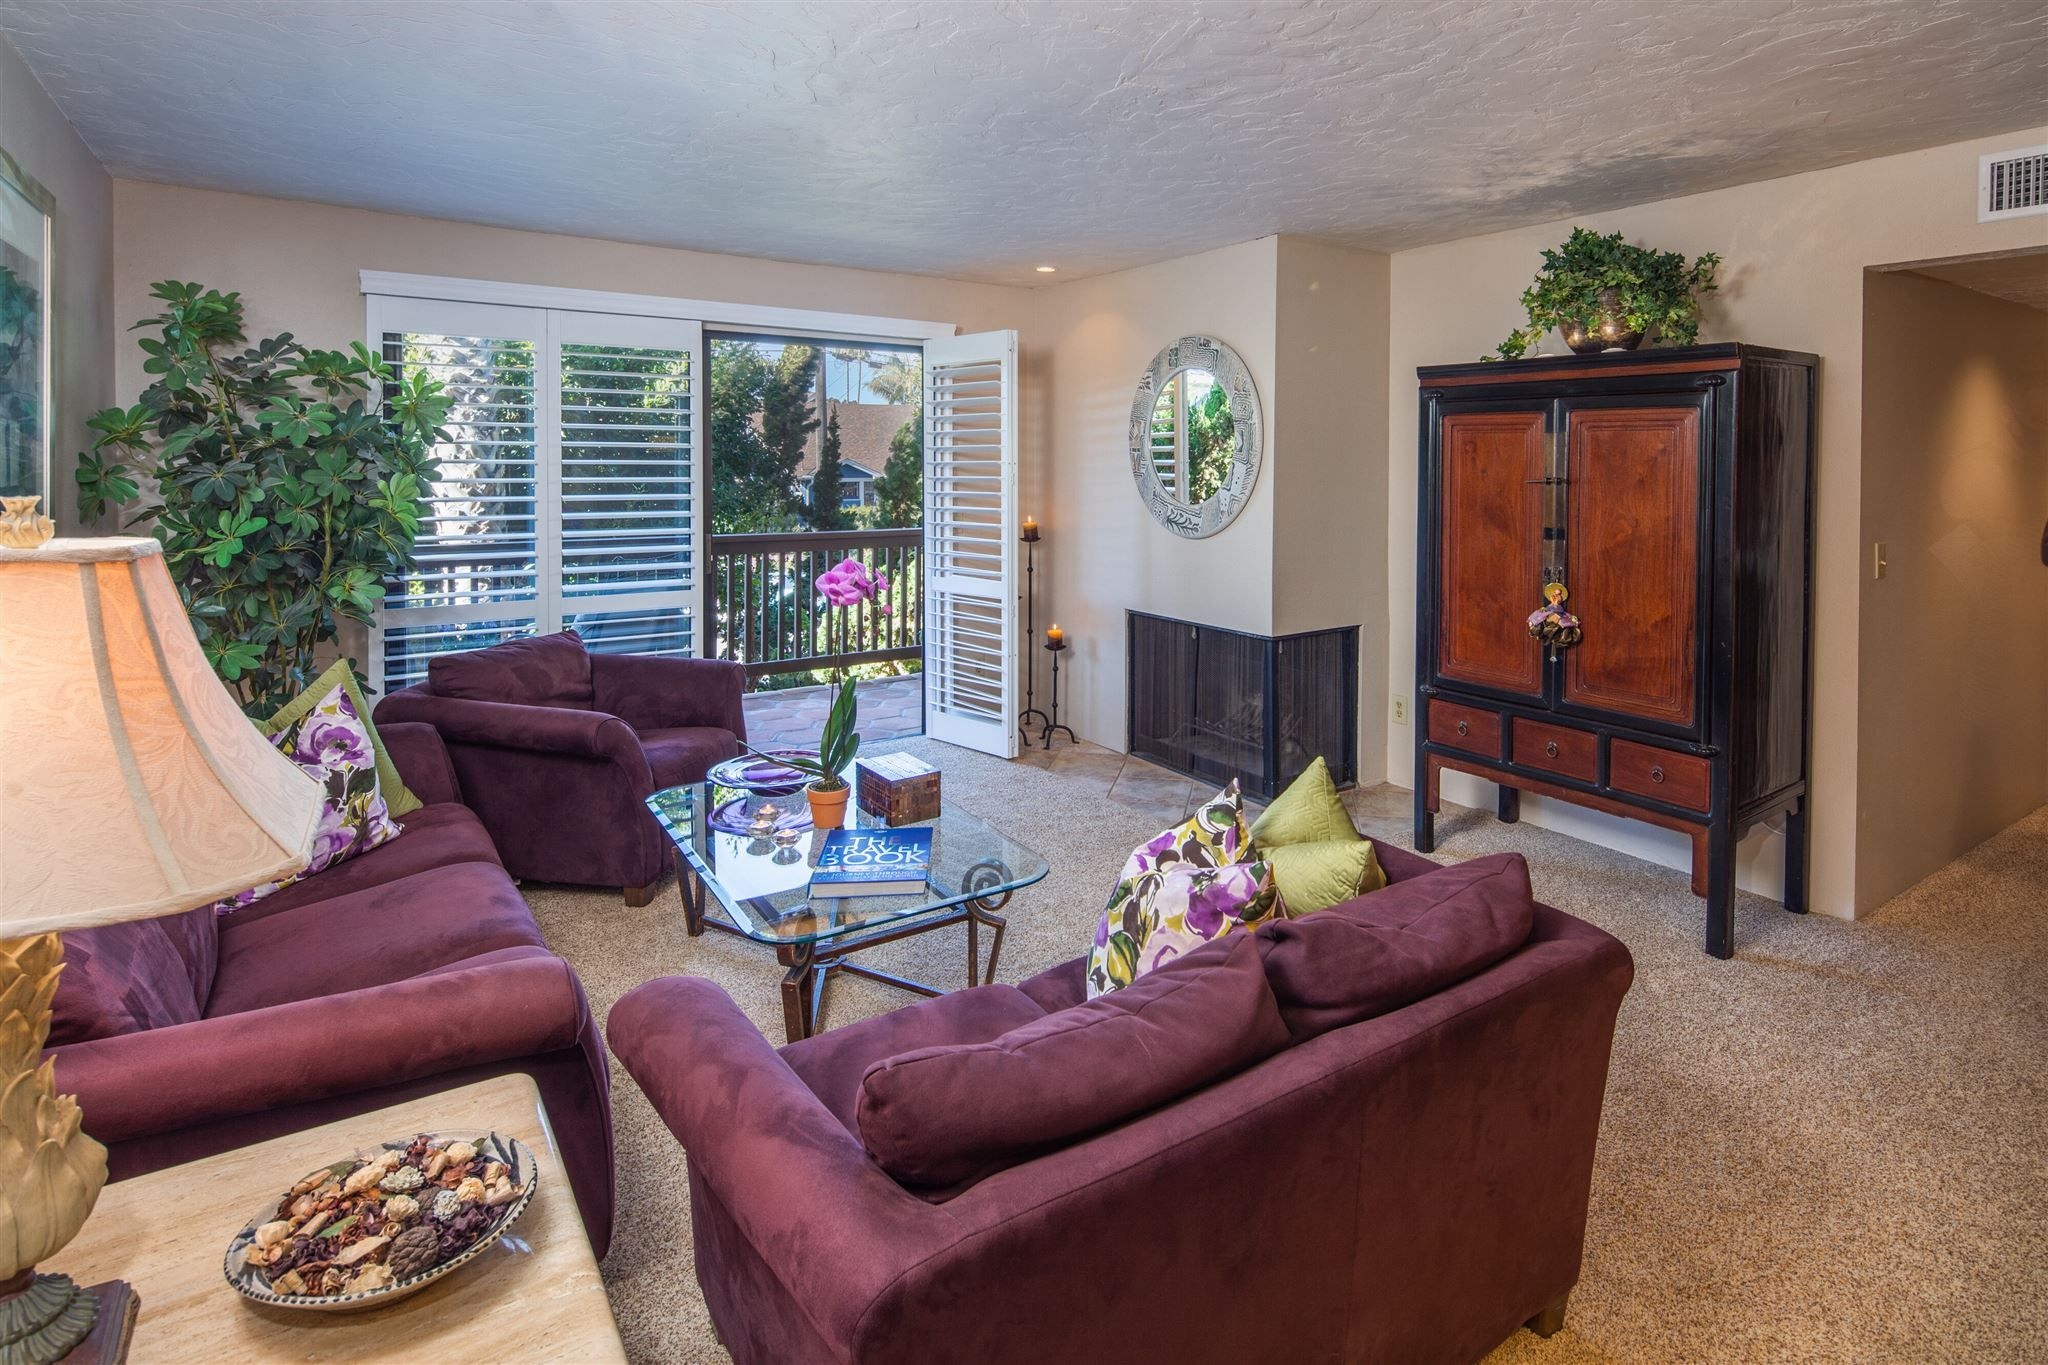 Main Photo: MISSION HILLS Condo for sale : 2 bedrooms : 3939 Eagle St #201 in San Diego